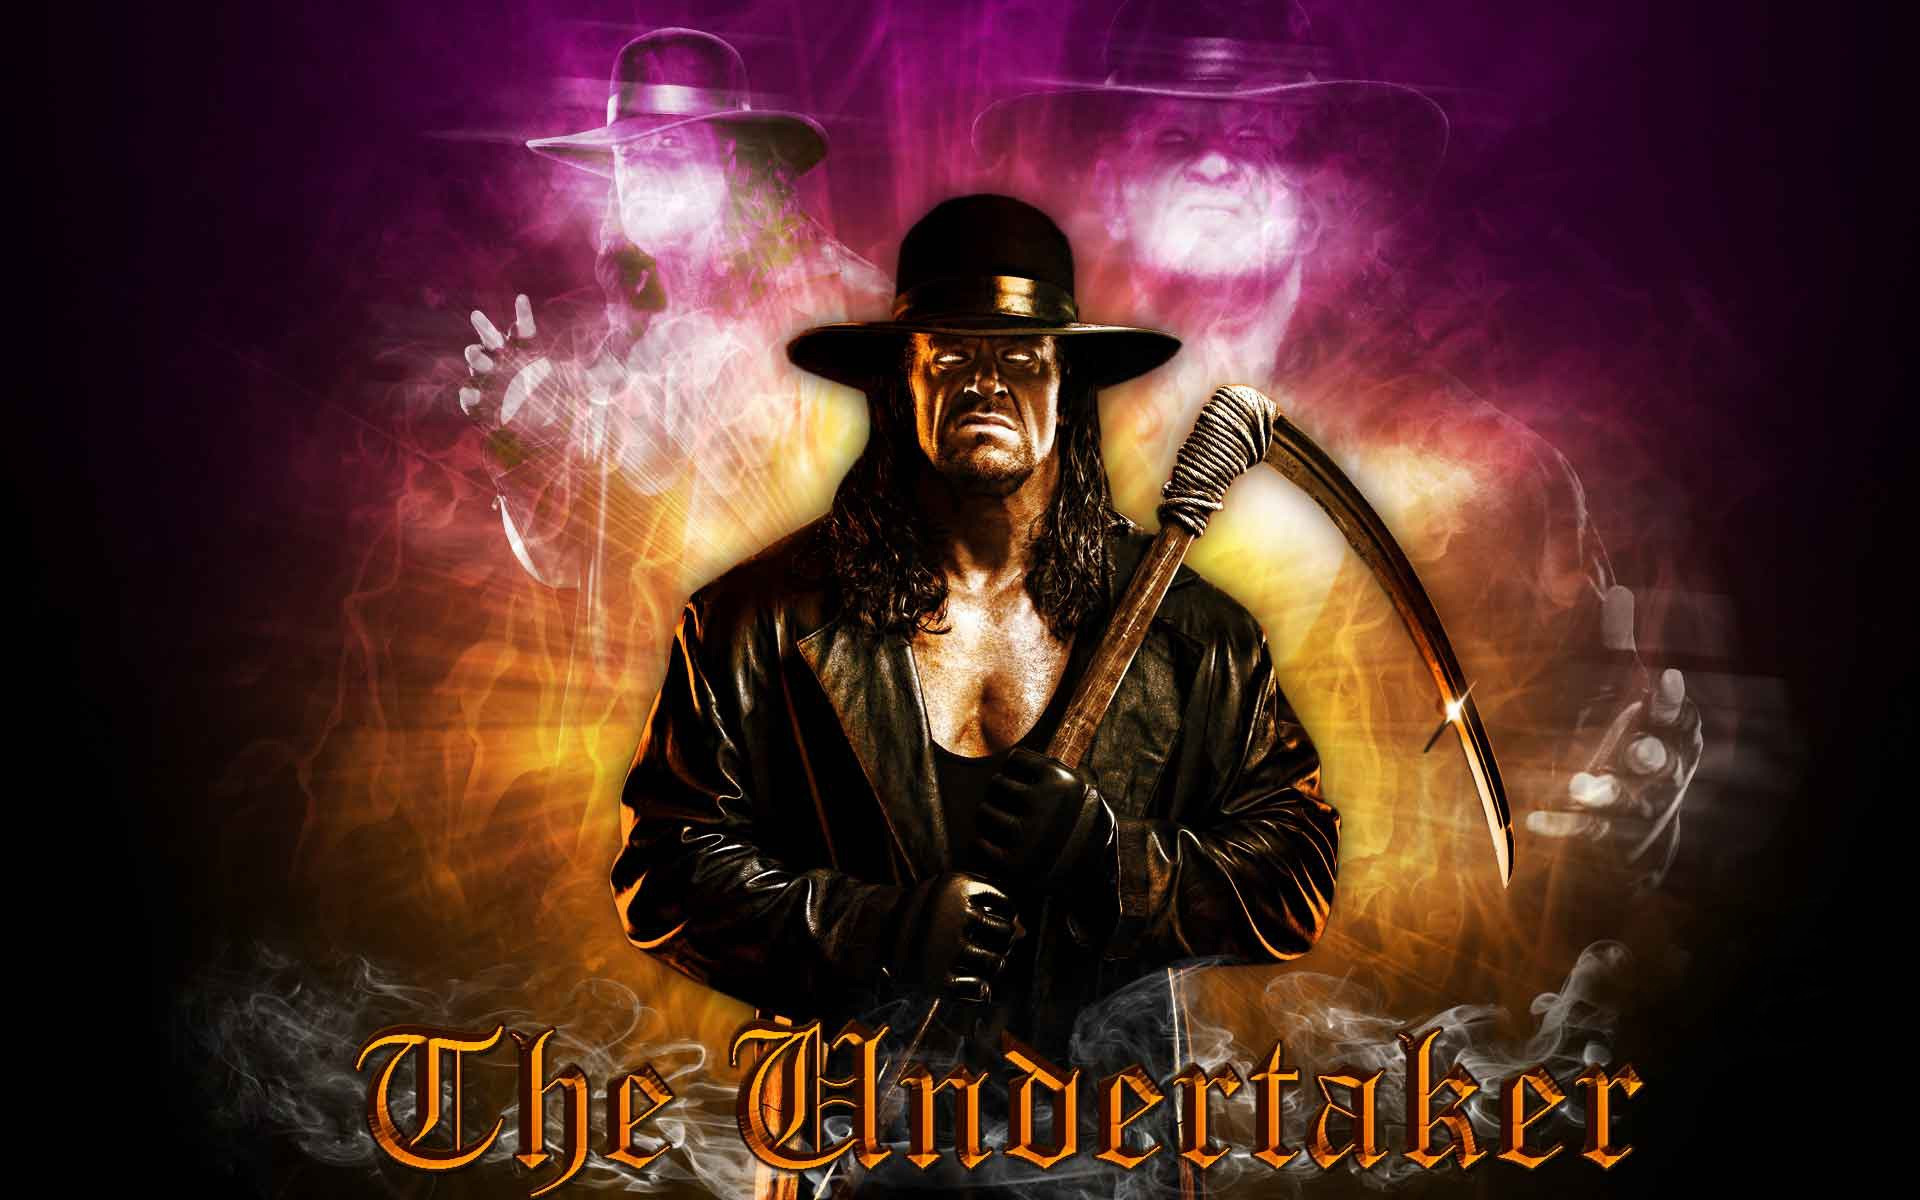 The Man from the Darkside, The Dead Man, The Phenom, The Undertaker!